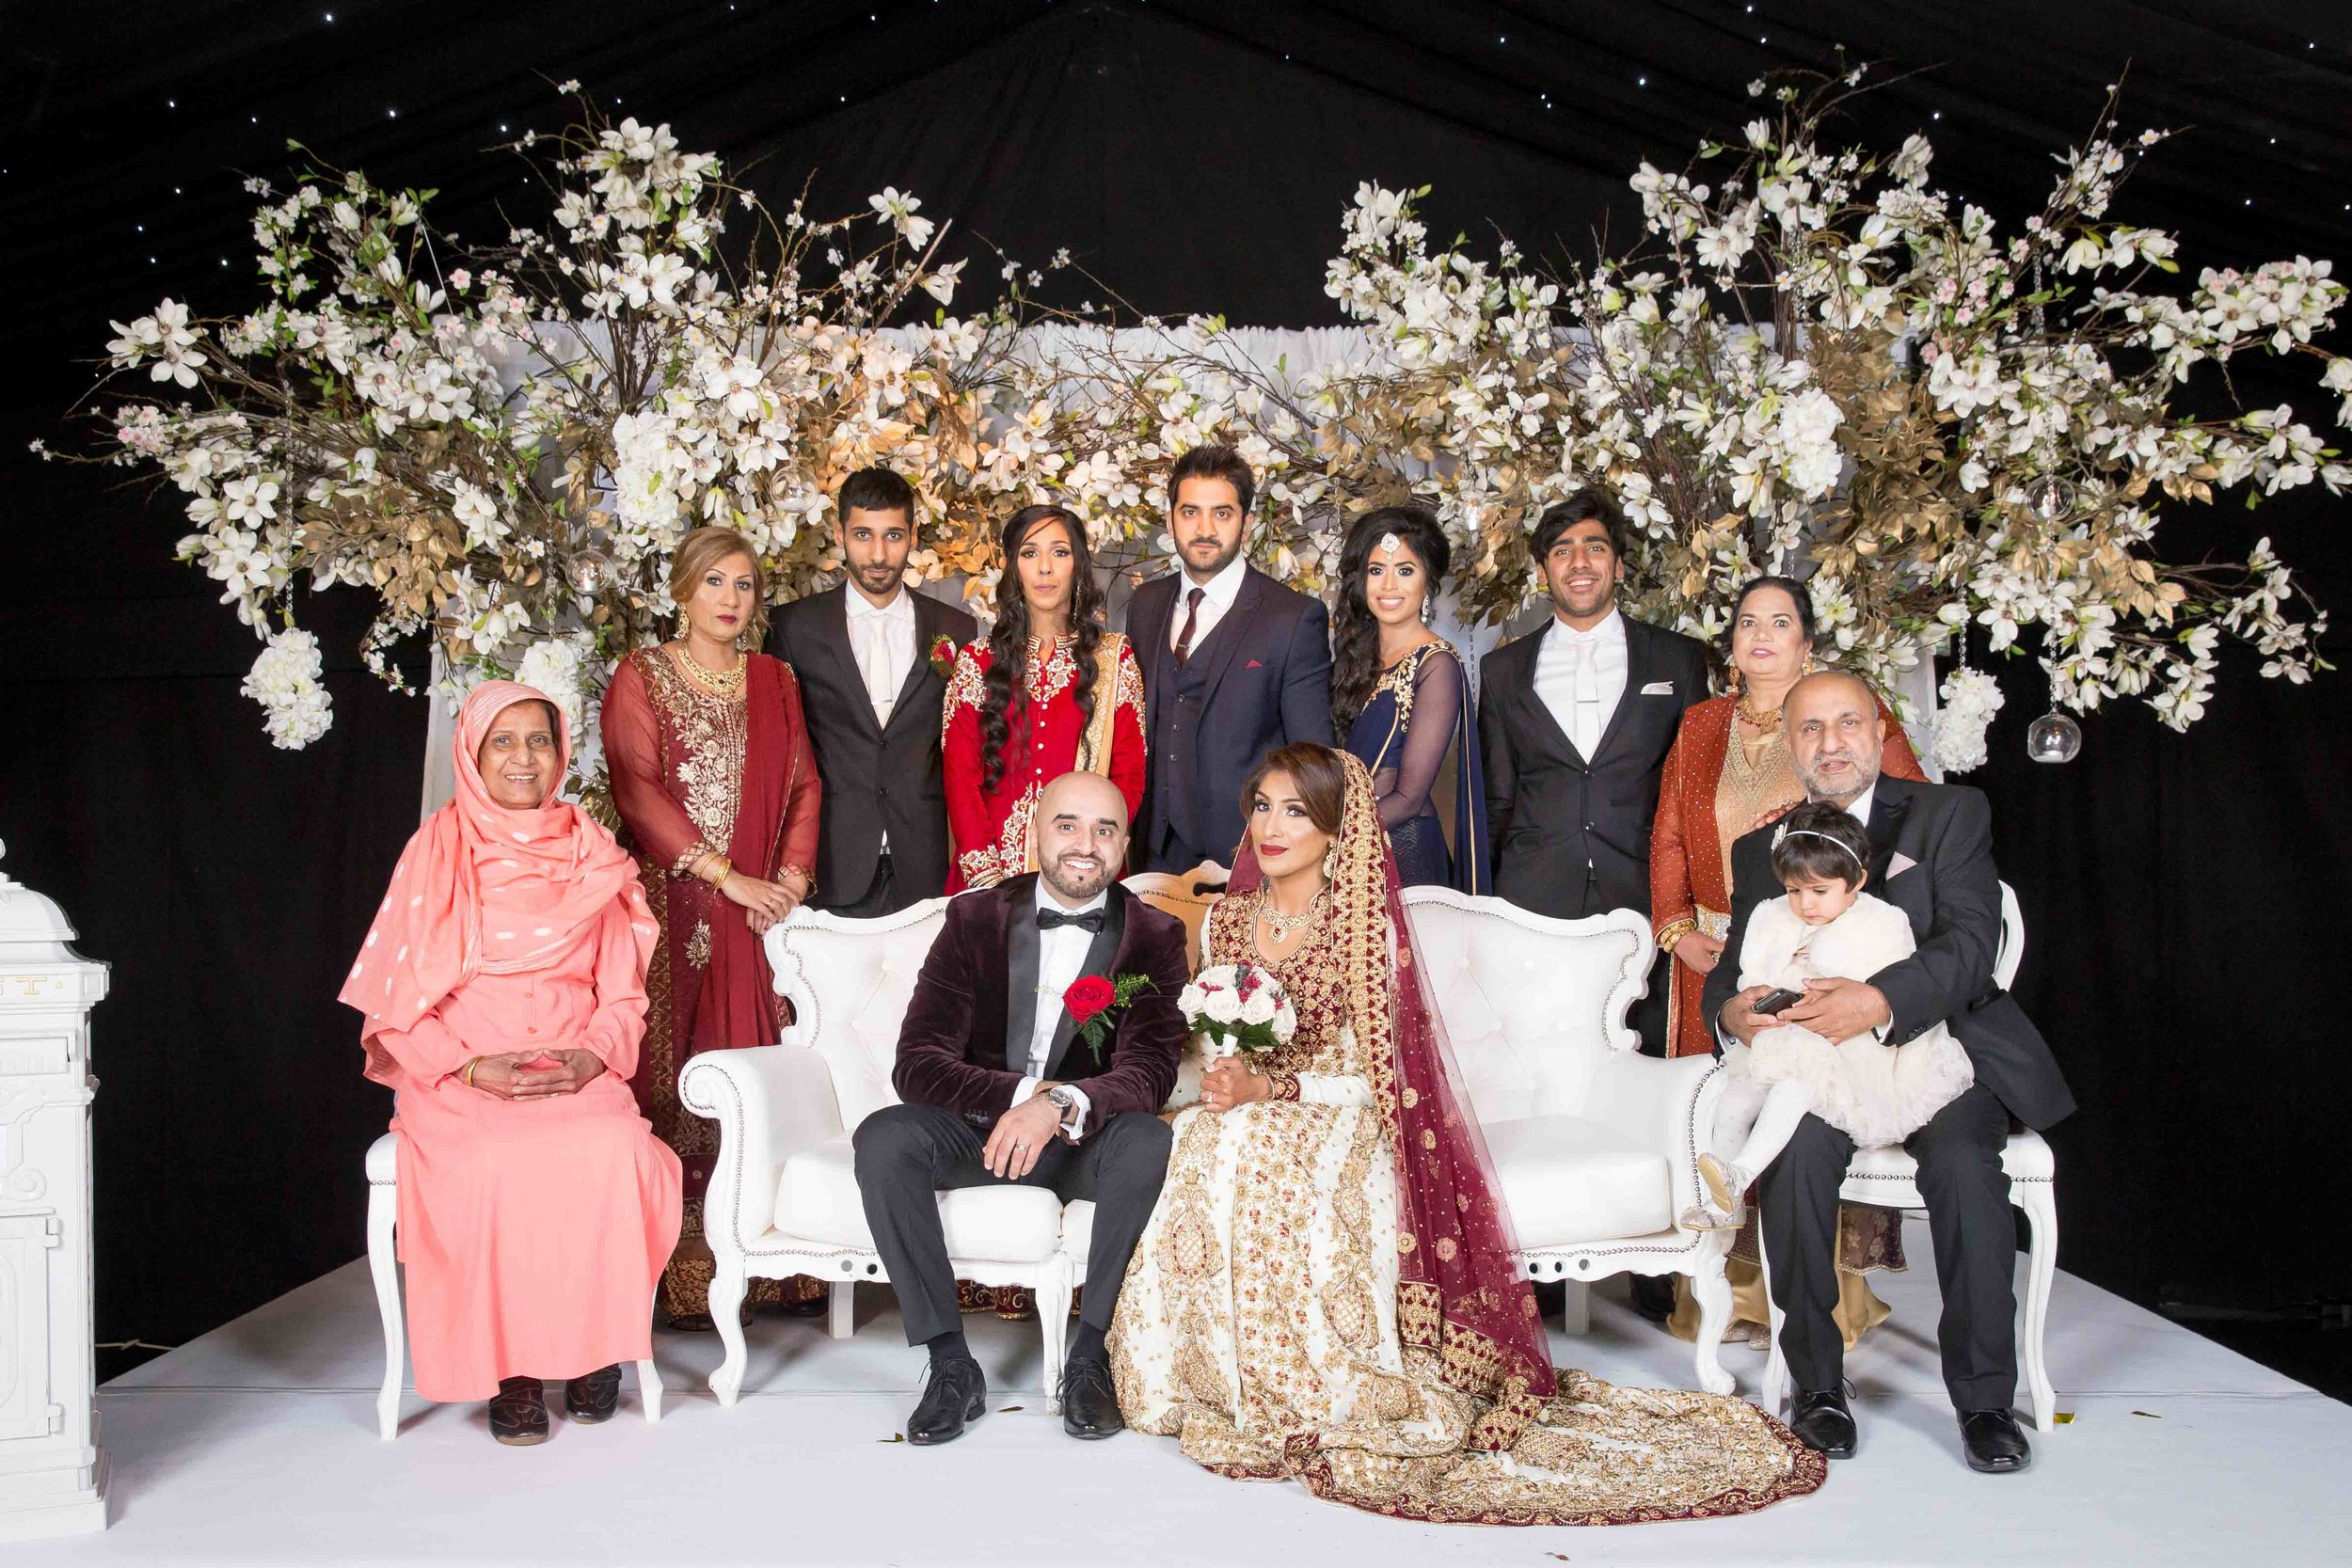 Asian Wedding Photographer Opu Sultan Photography Lyme Park Scotland Edinburgh Glasgow London Manchester Liverpool Birmingham Wedding Photos prewed shoot Azman & Saira Blog-112.jpg